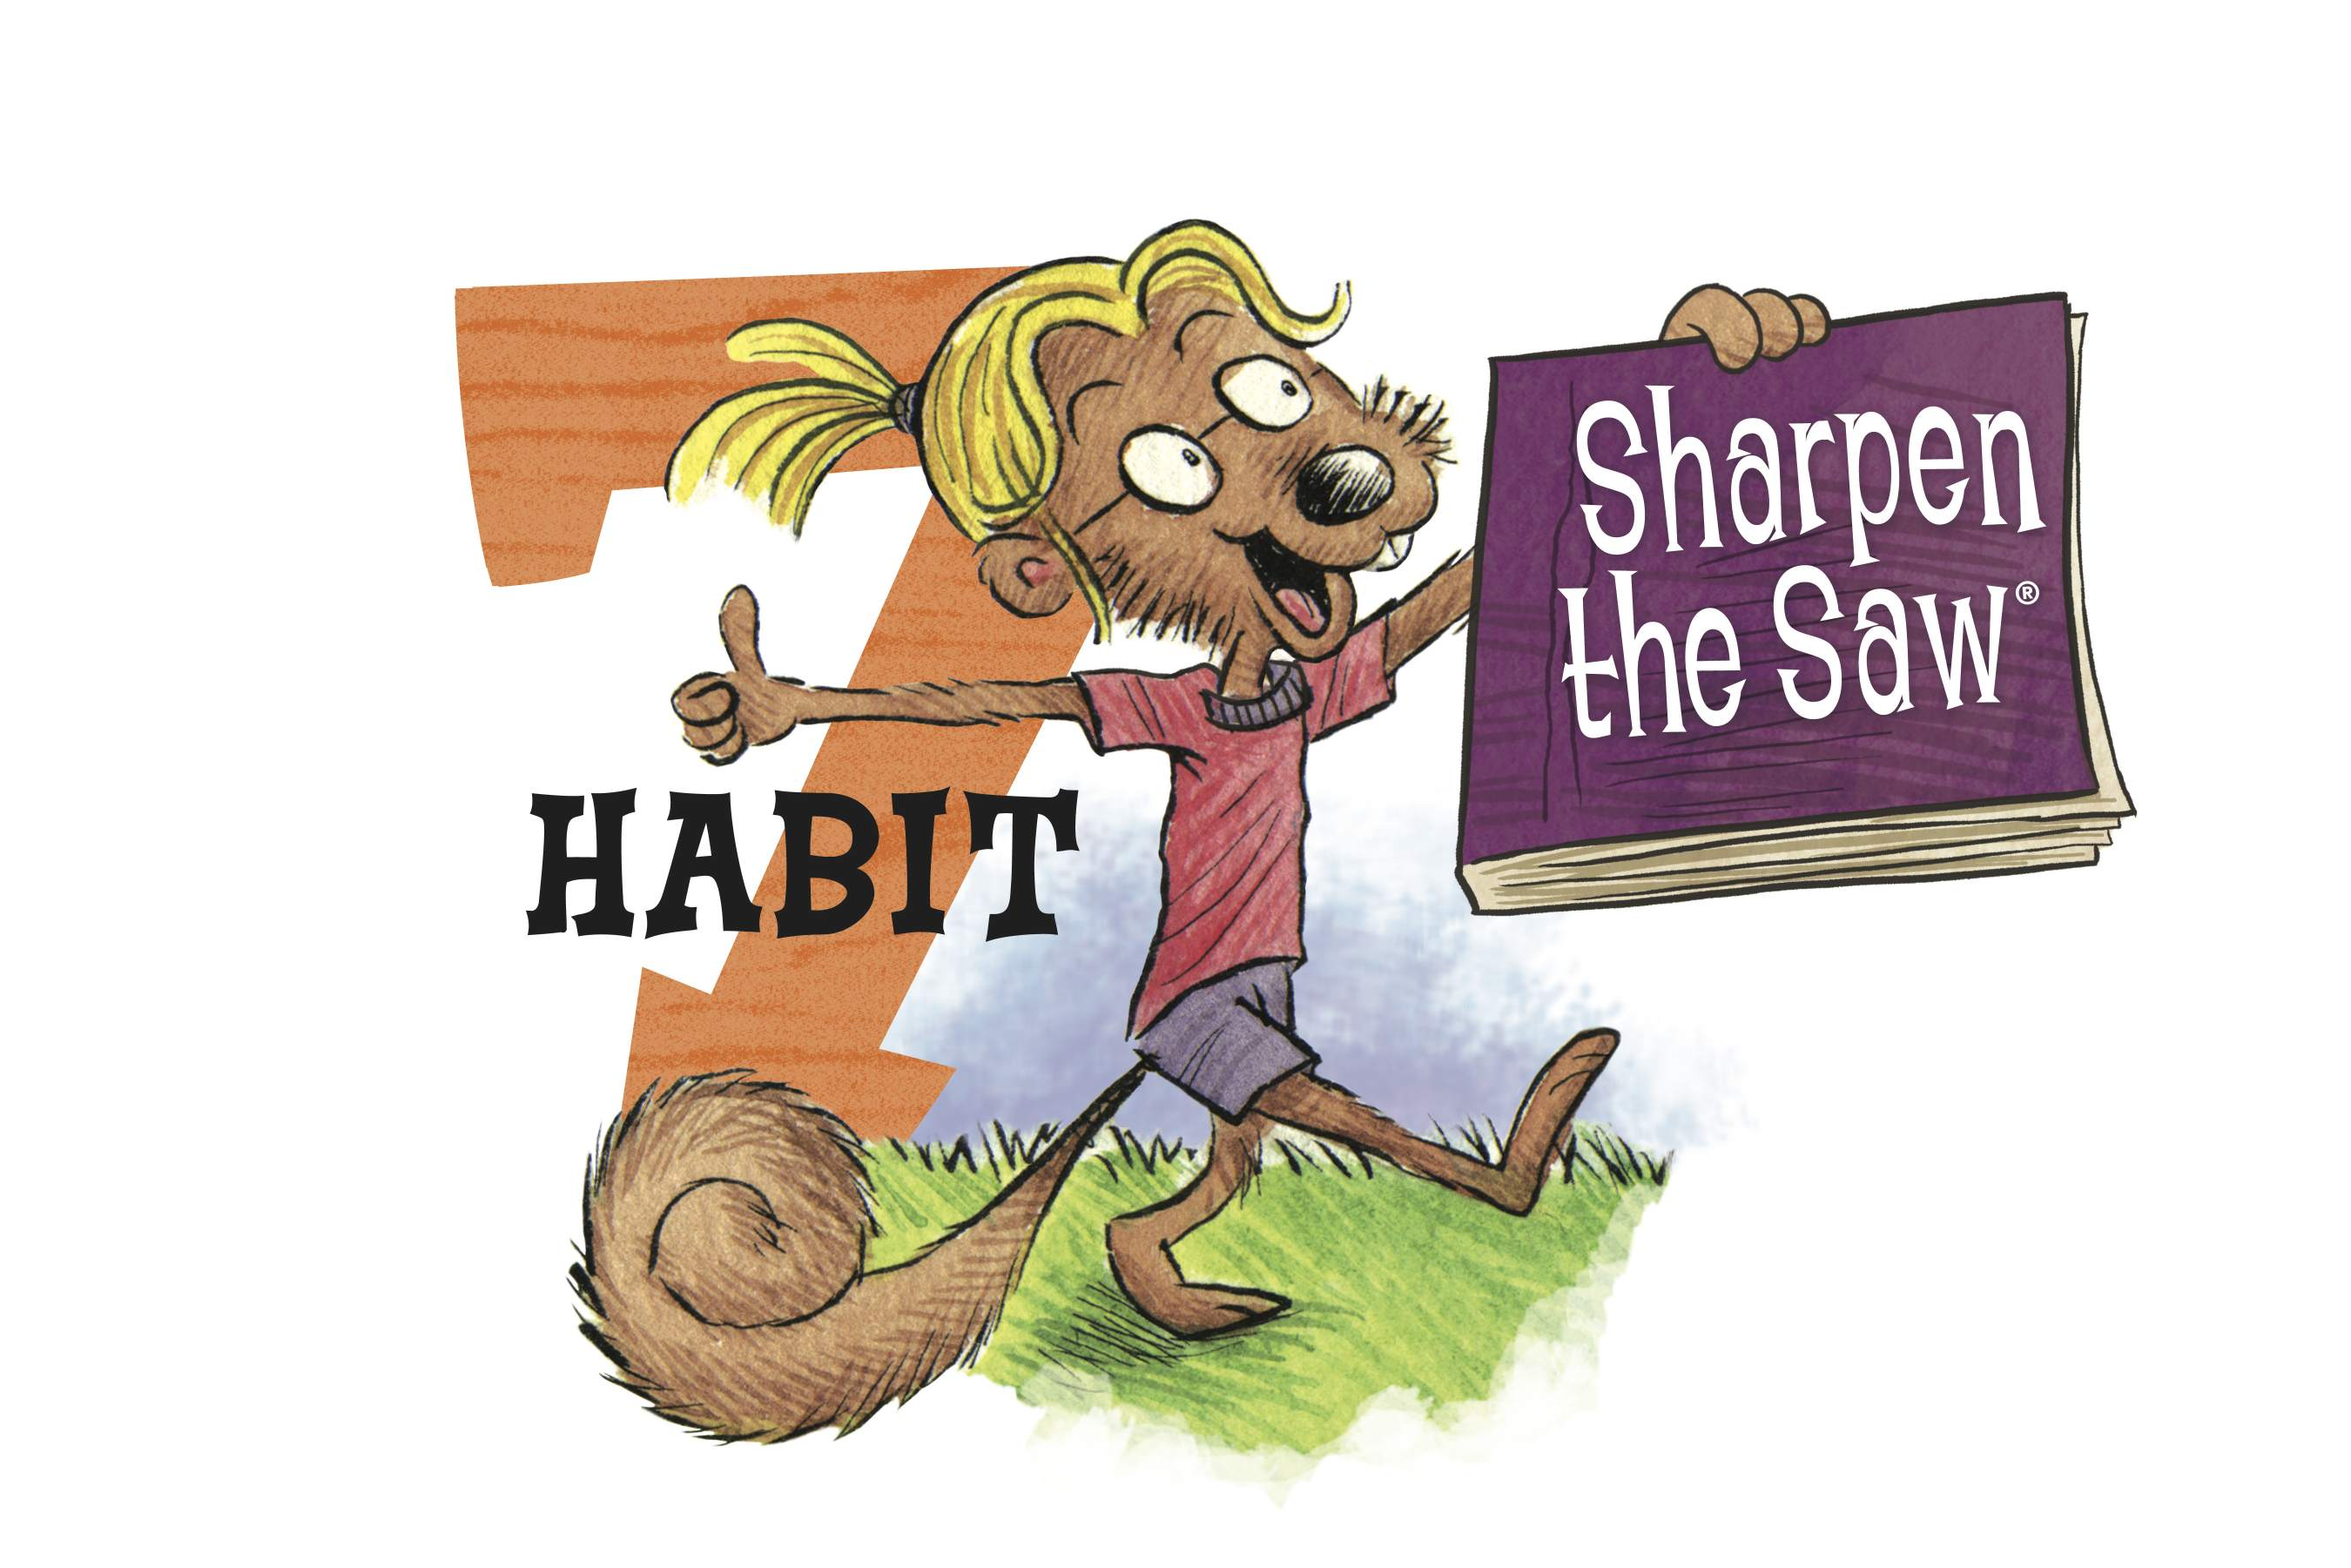 Habits Habit 7 Sharpen The Saw